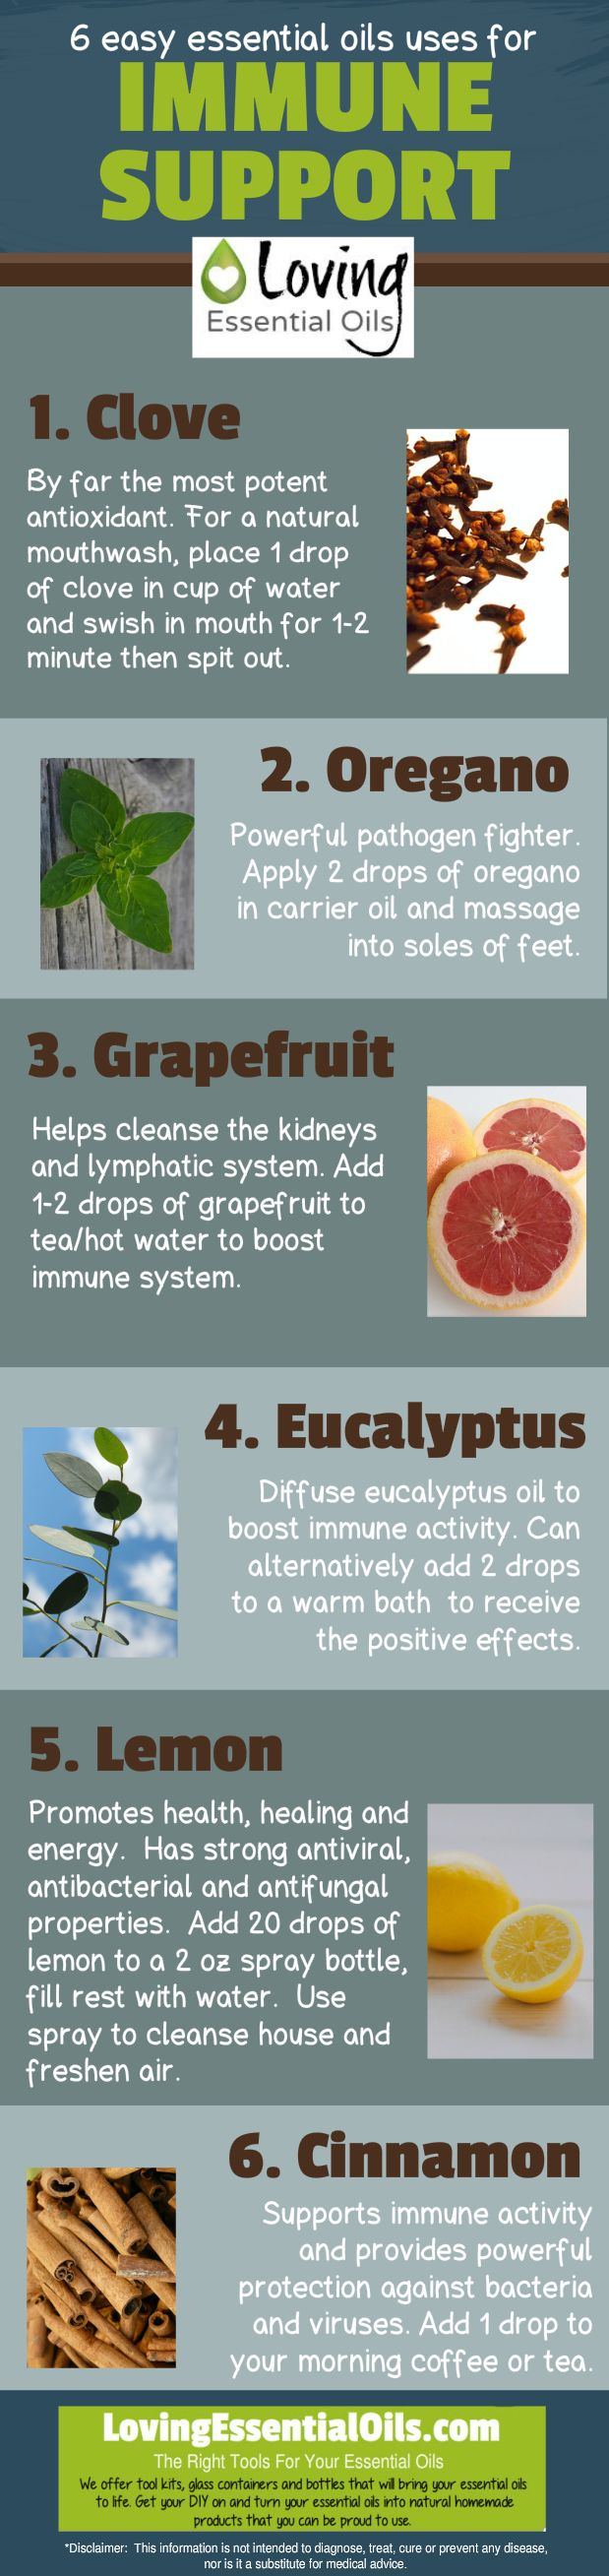 How to Improve Immune System with Essential Oils - 6 Easy Ways to Use Essential Oils Immune Support, read more here: http://www.lovingessentialoils.com/blogs/essential-oil-tips/109352710-how-to-improve-immune-system-with-essential-oils